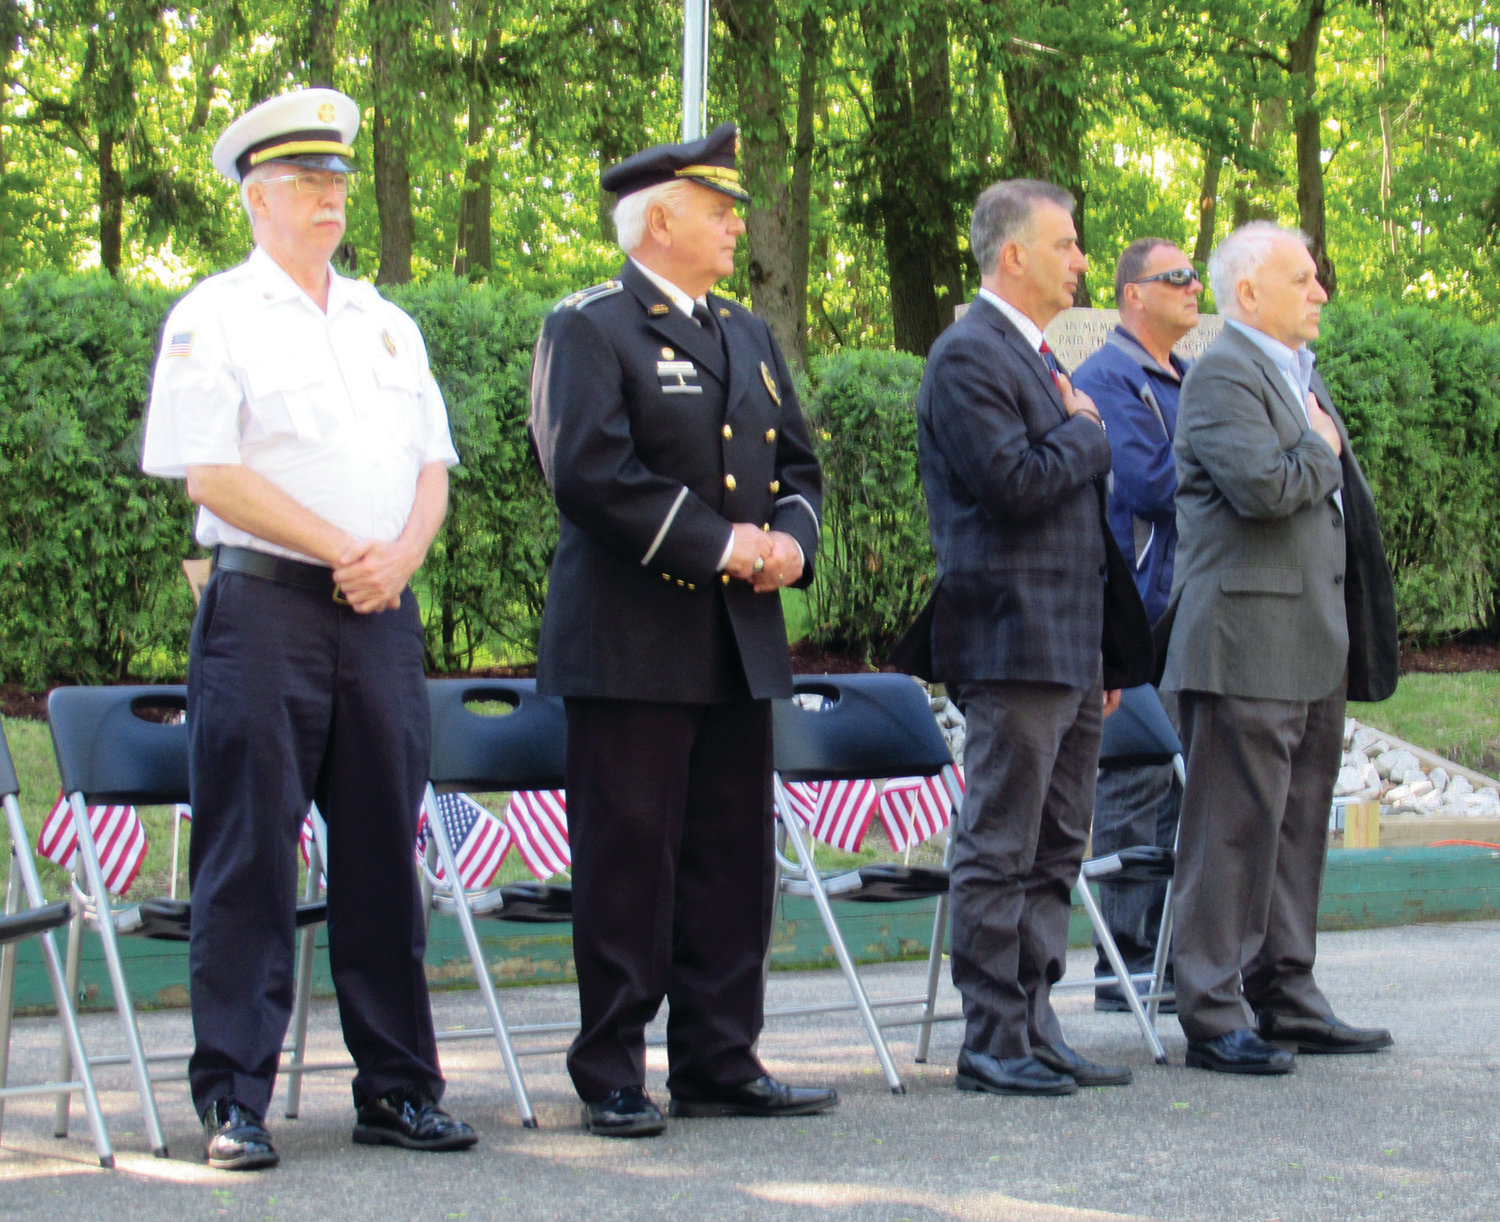 SUPER SALUTE: Johnston officials like Fire Chief Peter Lamb, Police Chief Richard S. Tamburini, state Sen. Frank Lombardo and Parks and Recreation Director Dan Mazzulla, who emceed the impressive ceremony, helped the town honor its heroes.